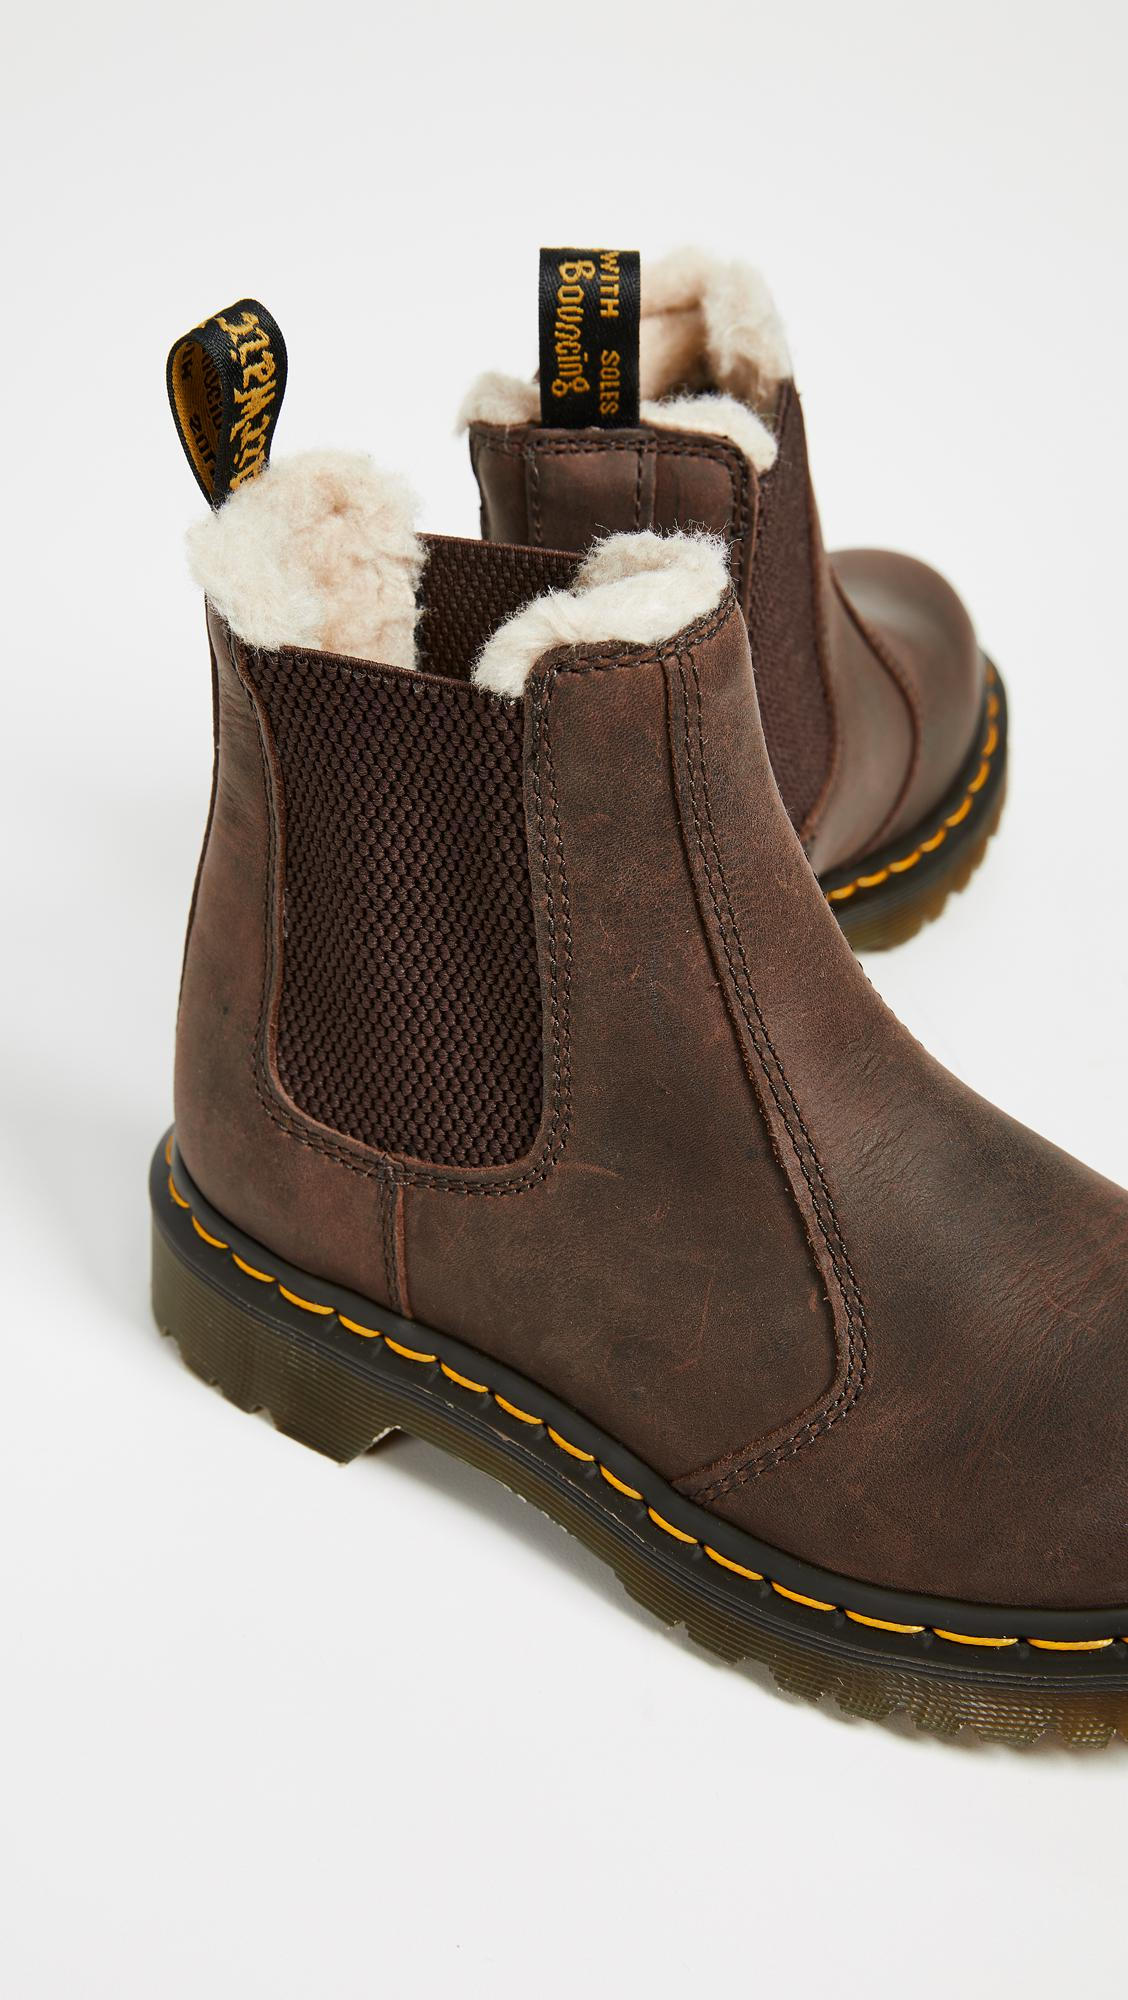 Dr. Martens Leonore Sherpa Chelsea Boots in Dark Brown ...